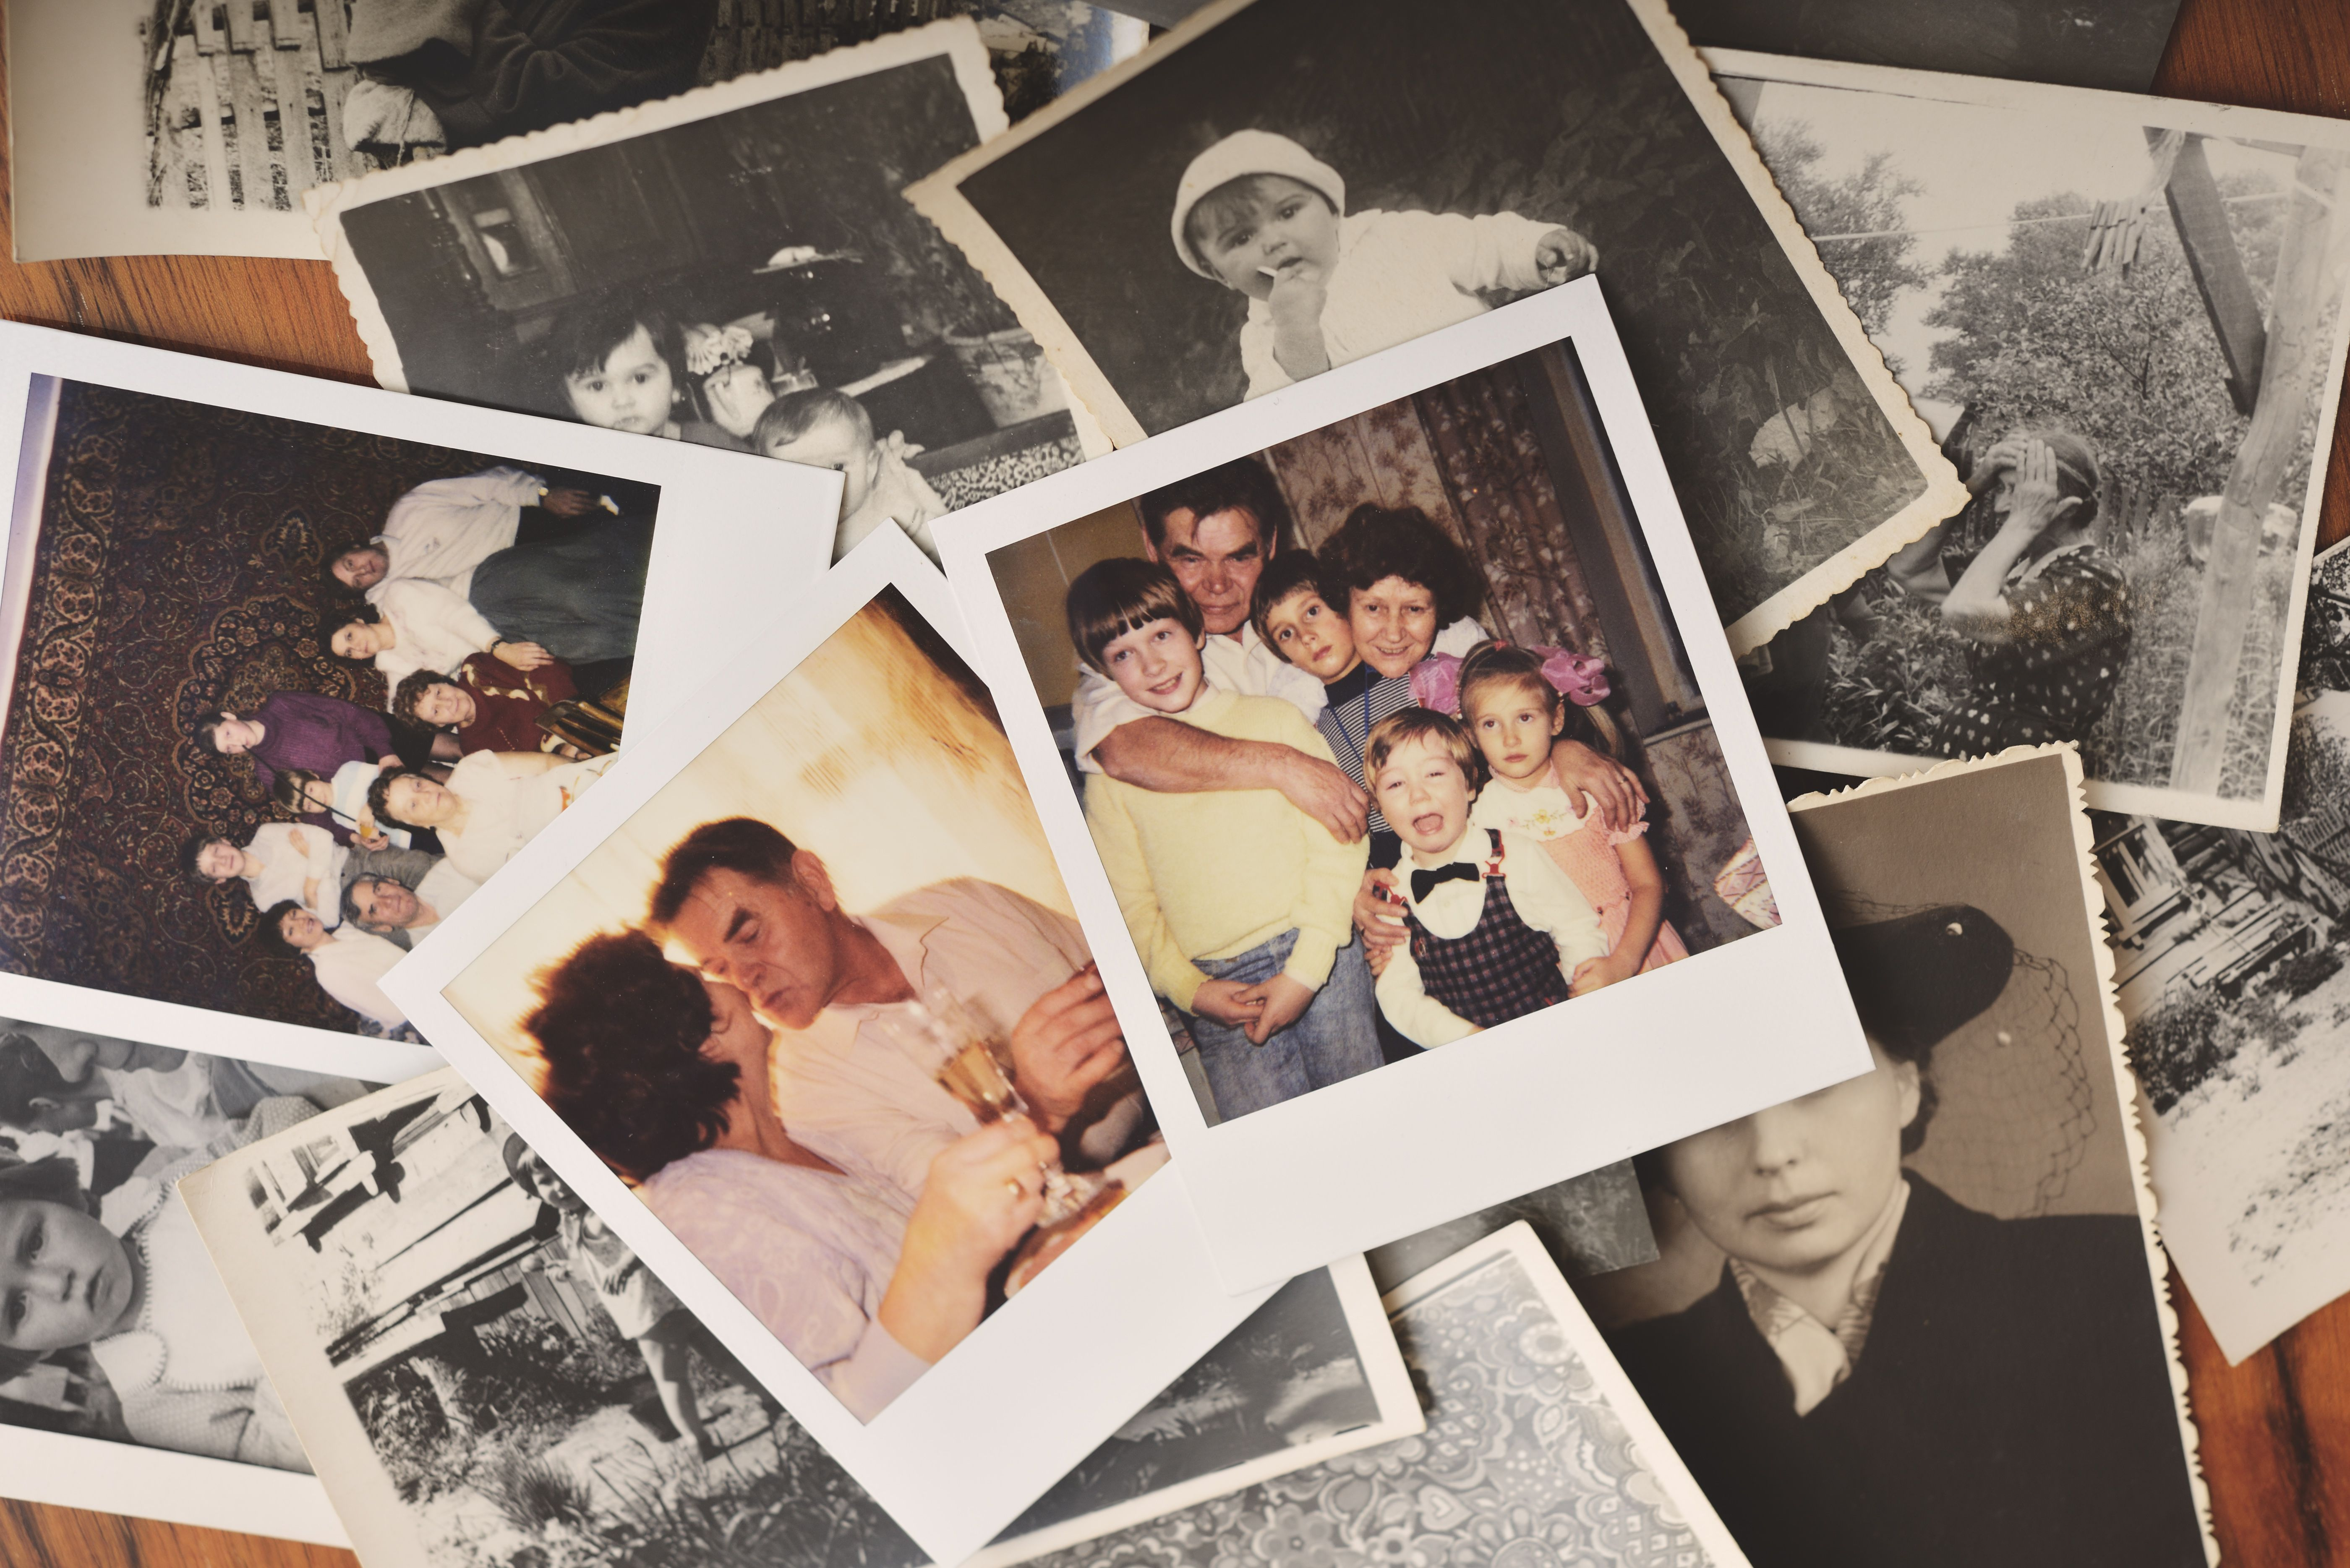 We're Losing Generations of Family History Because We Don't Share Our Stories